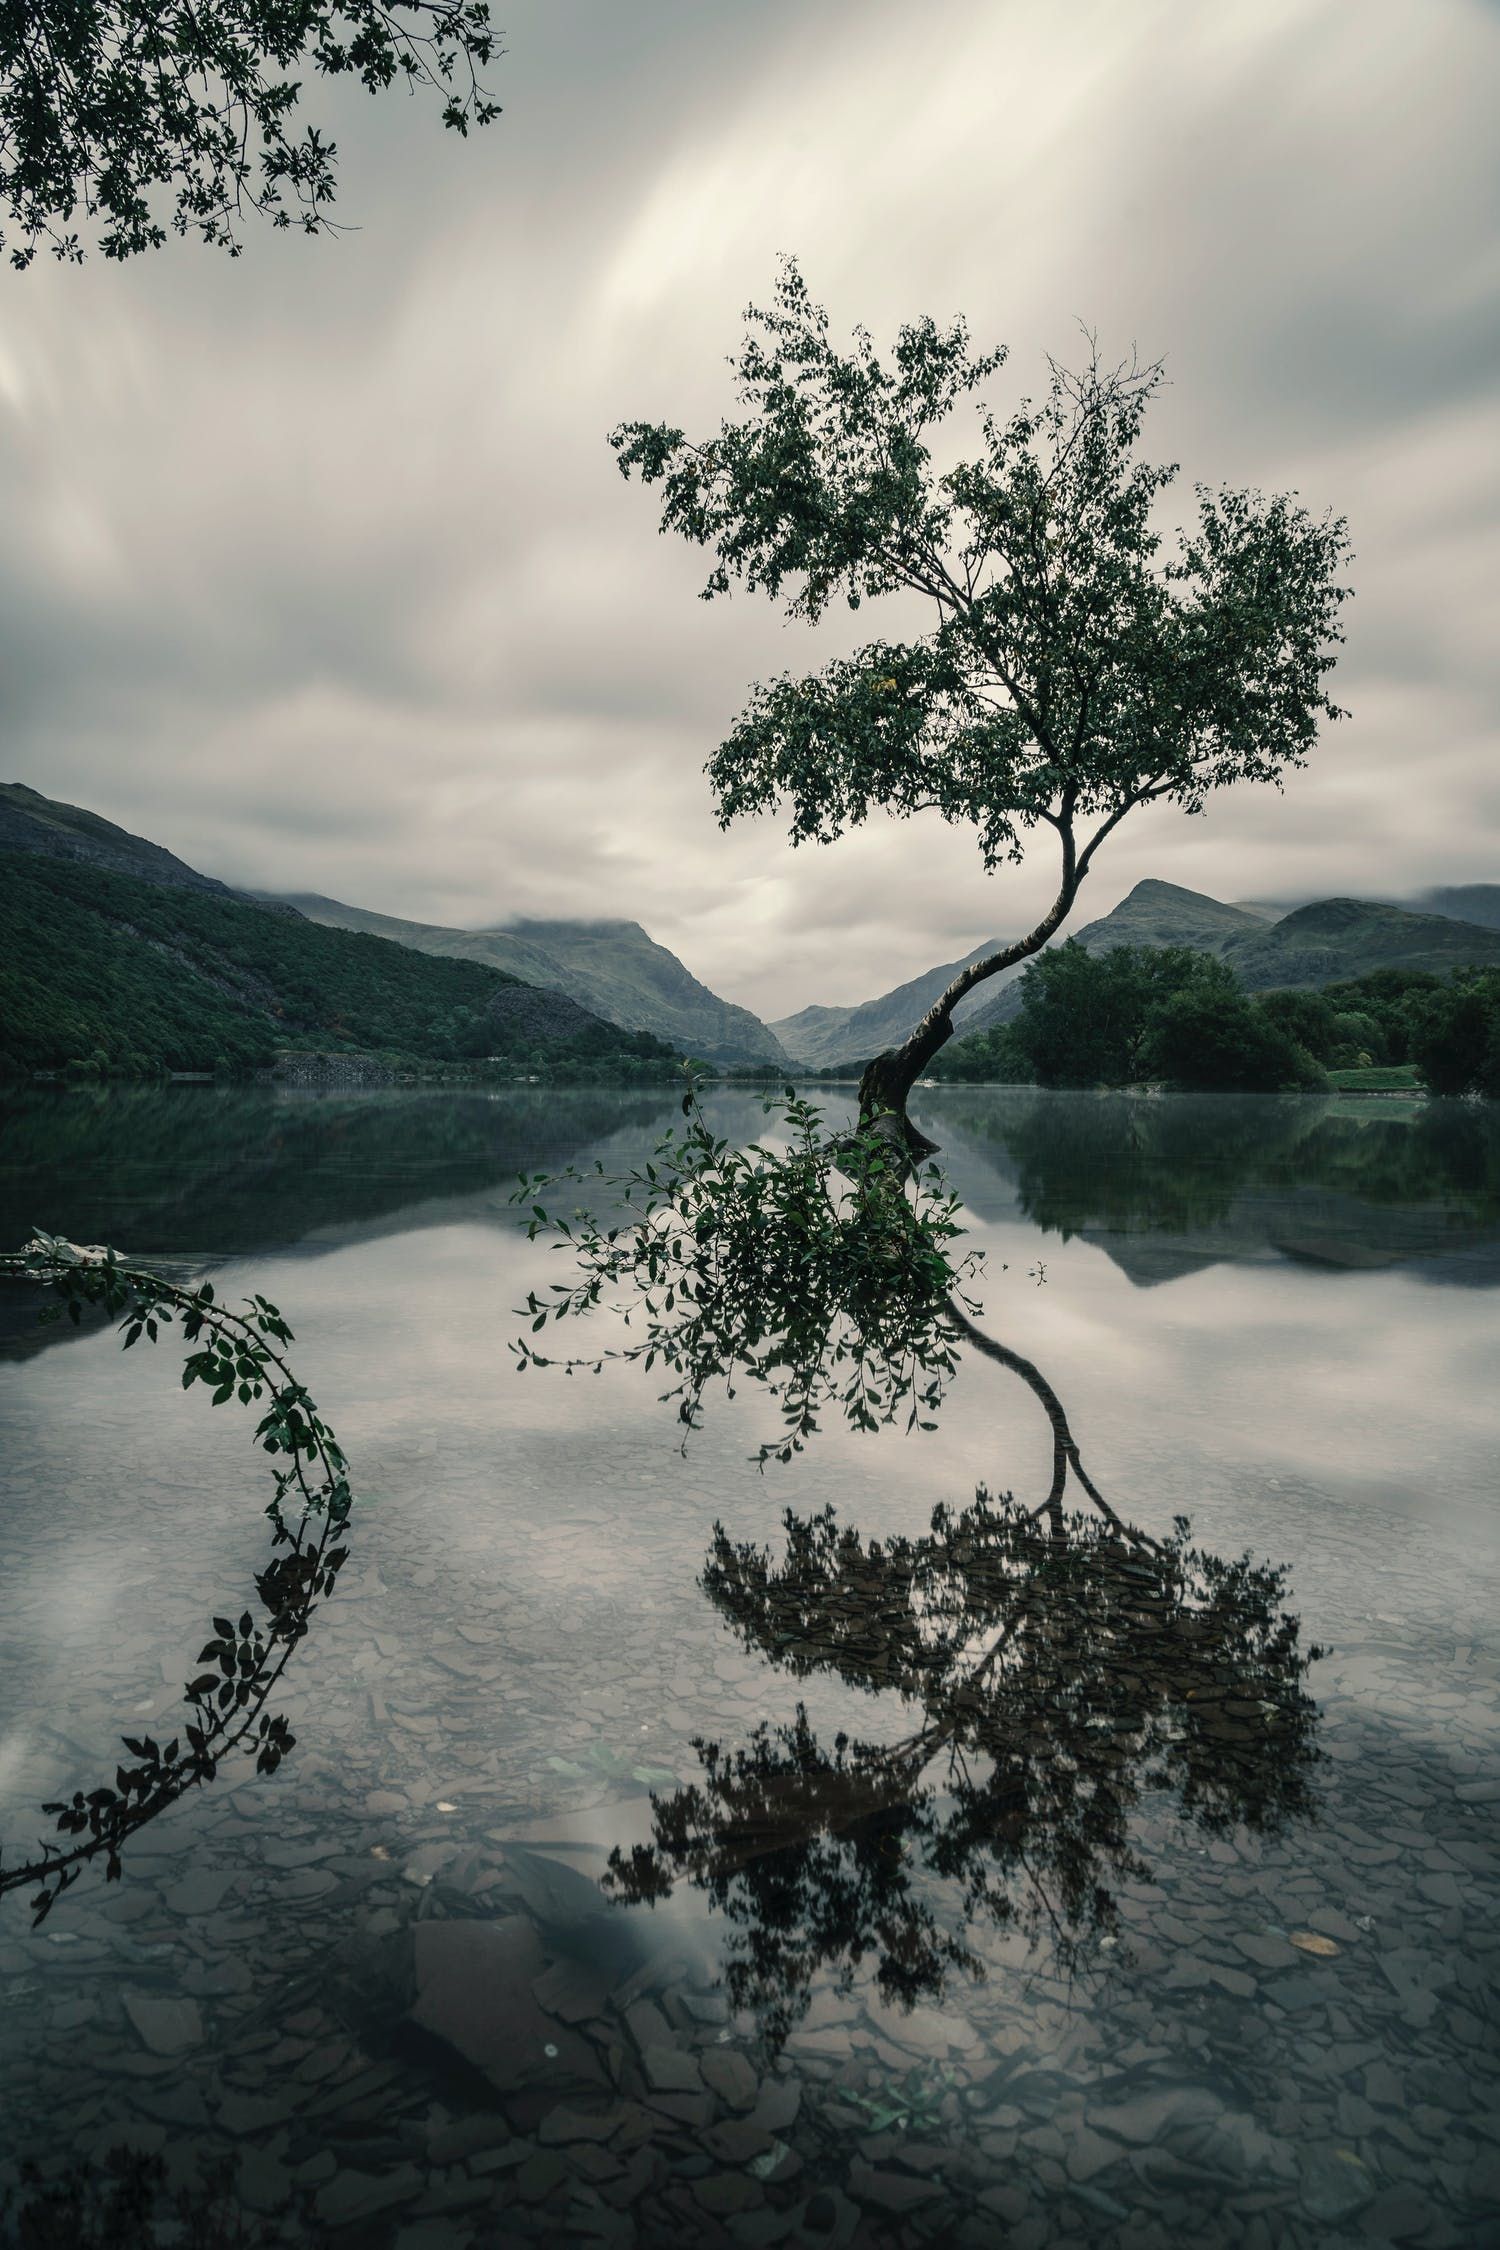 Tree With Reflection on Body of Water